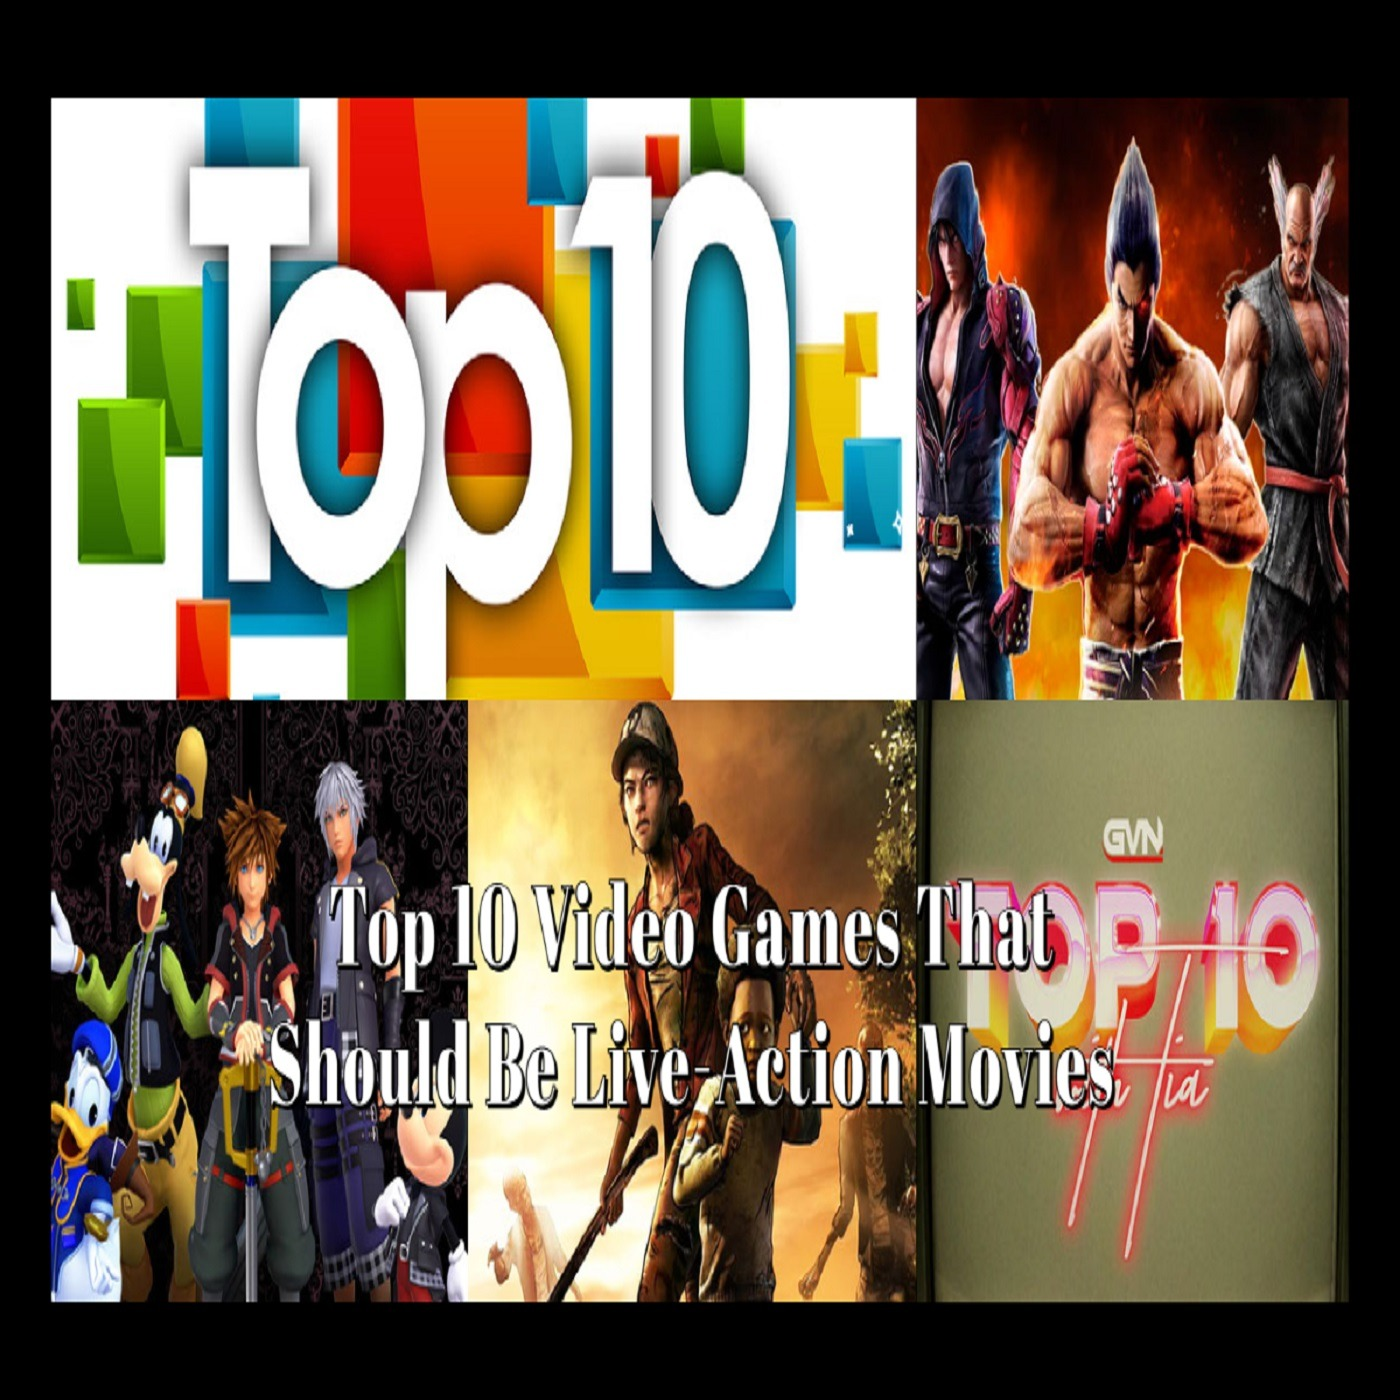 Top 10 Video Games That Should Be Live Action Movies